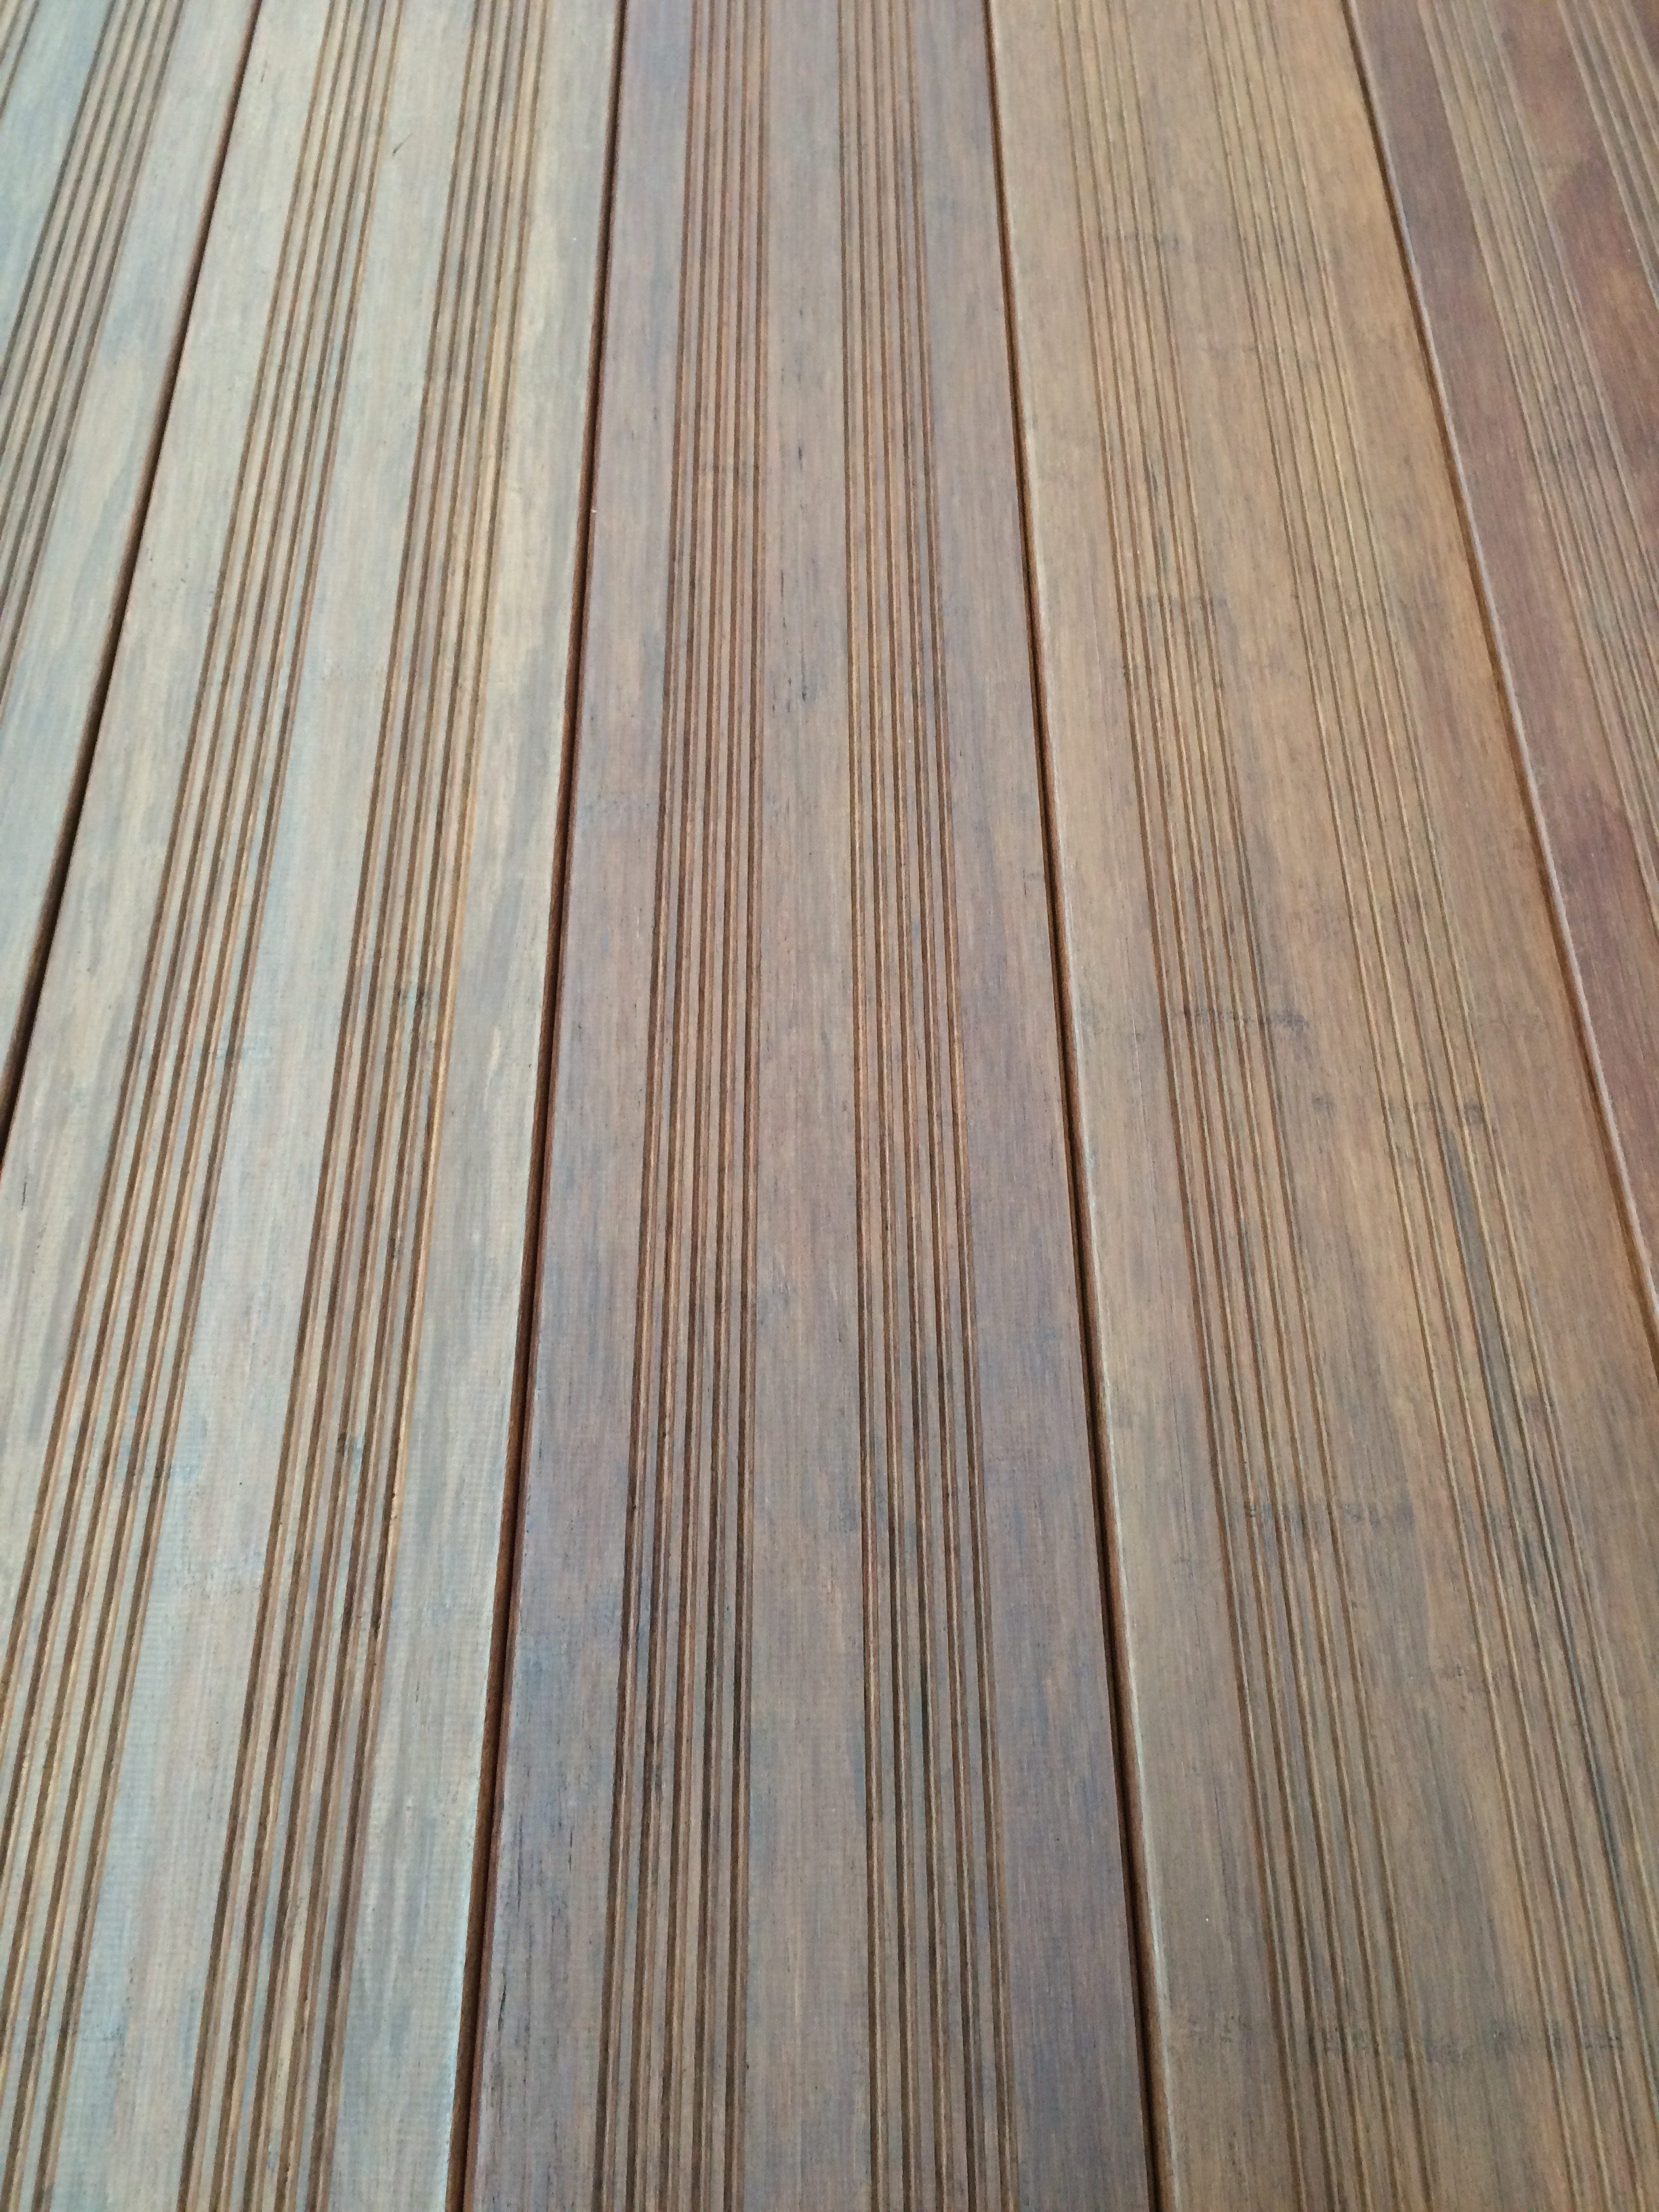 Bamboo flooring sales floortech for Bamboo flooring outdoor decking